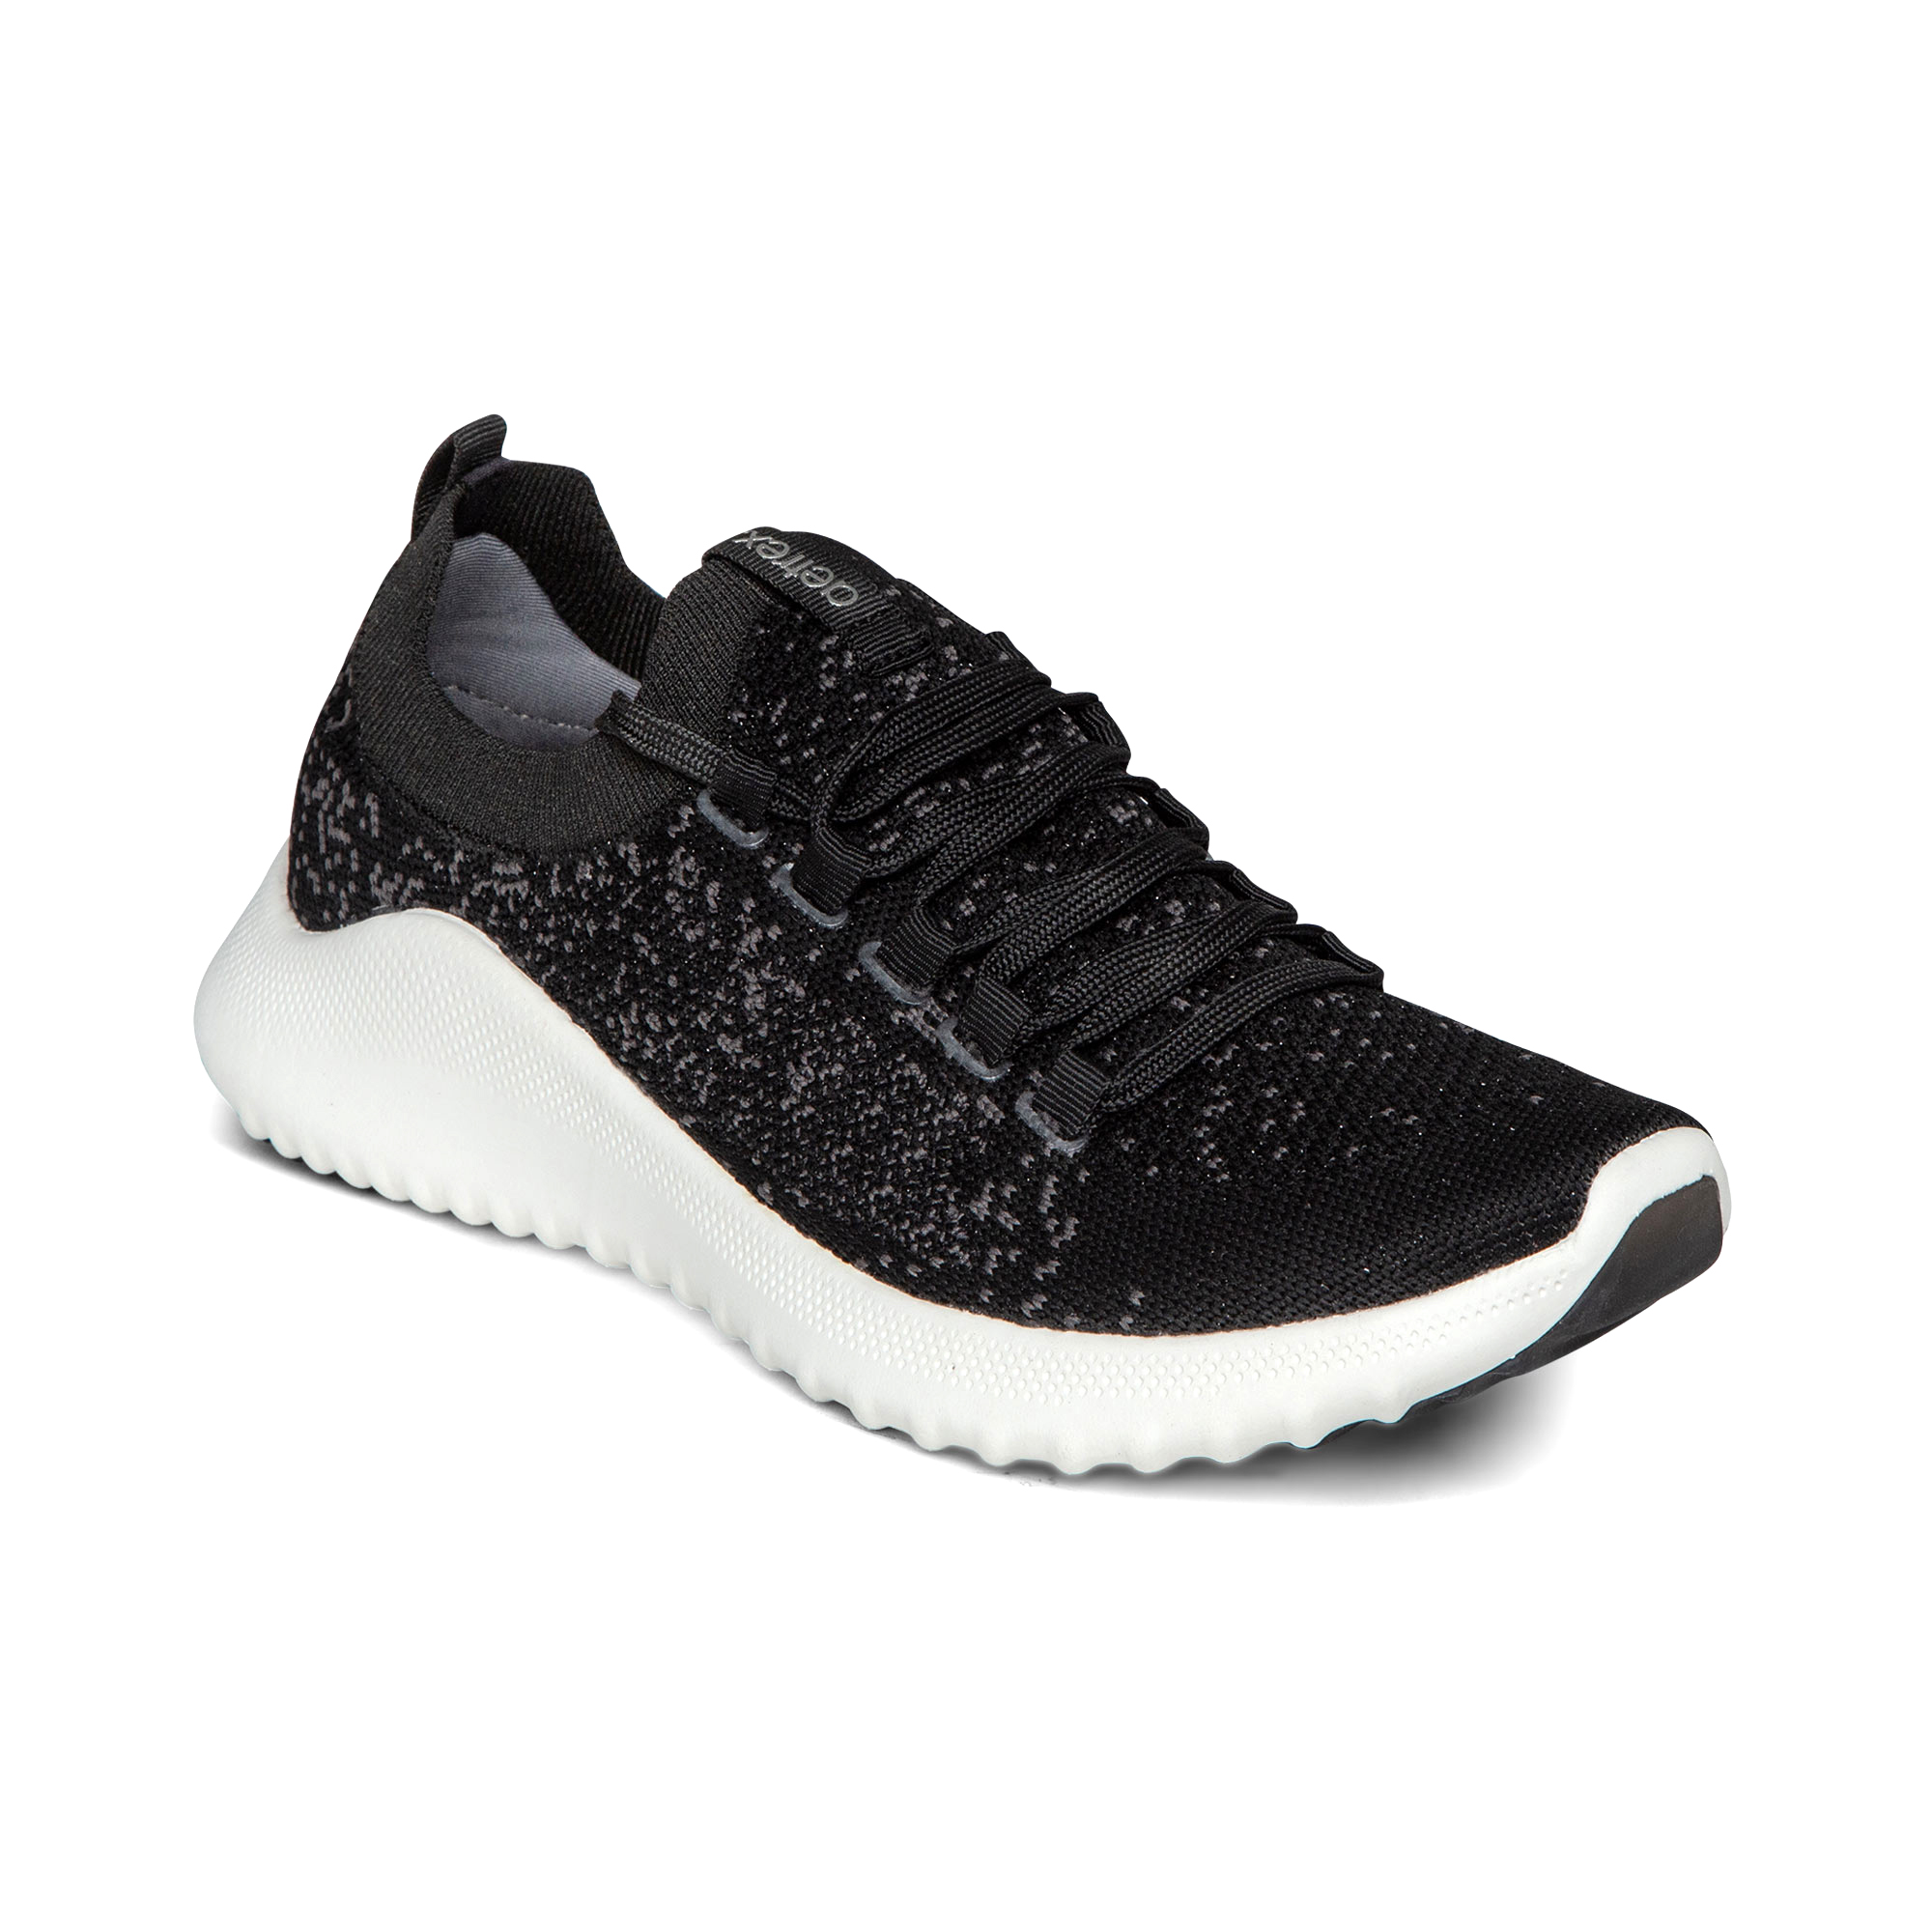 fashionable sneakers with arch support